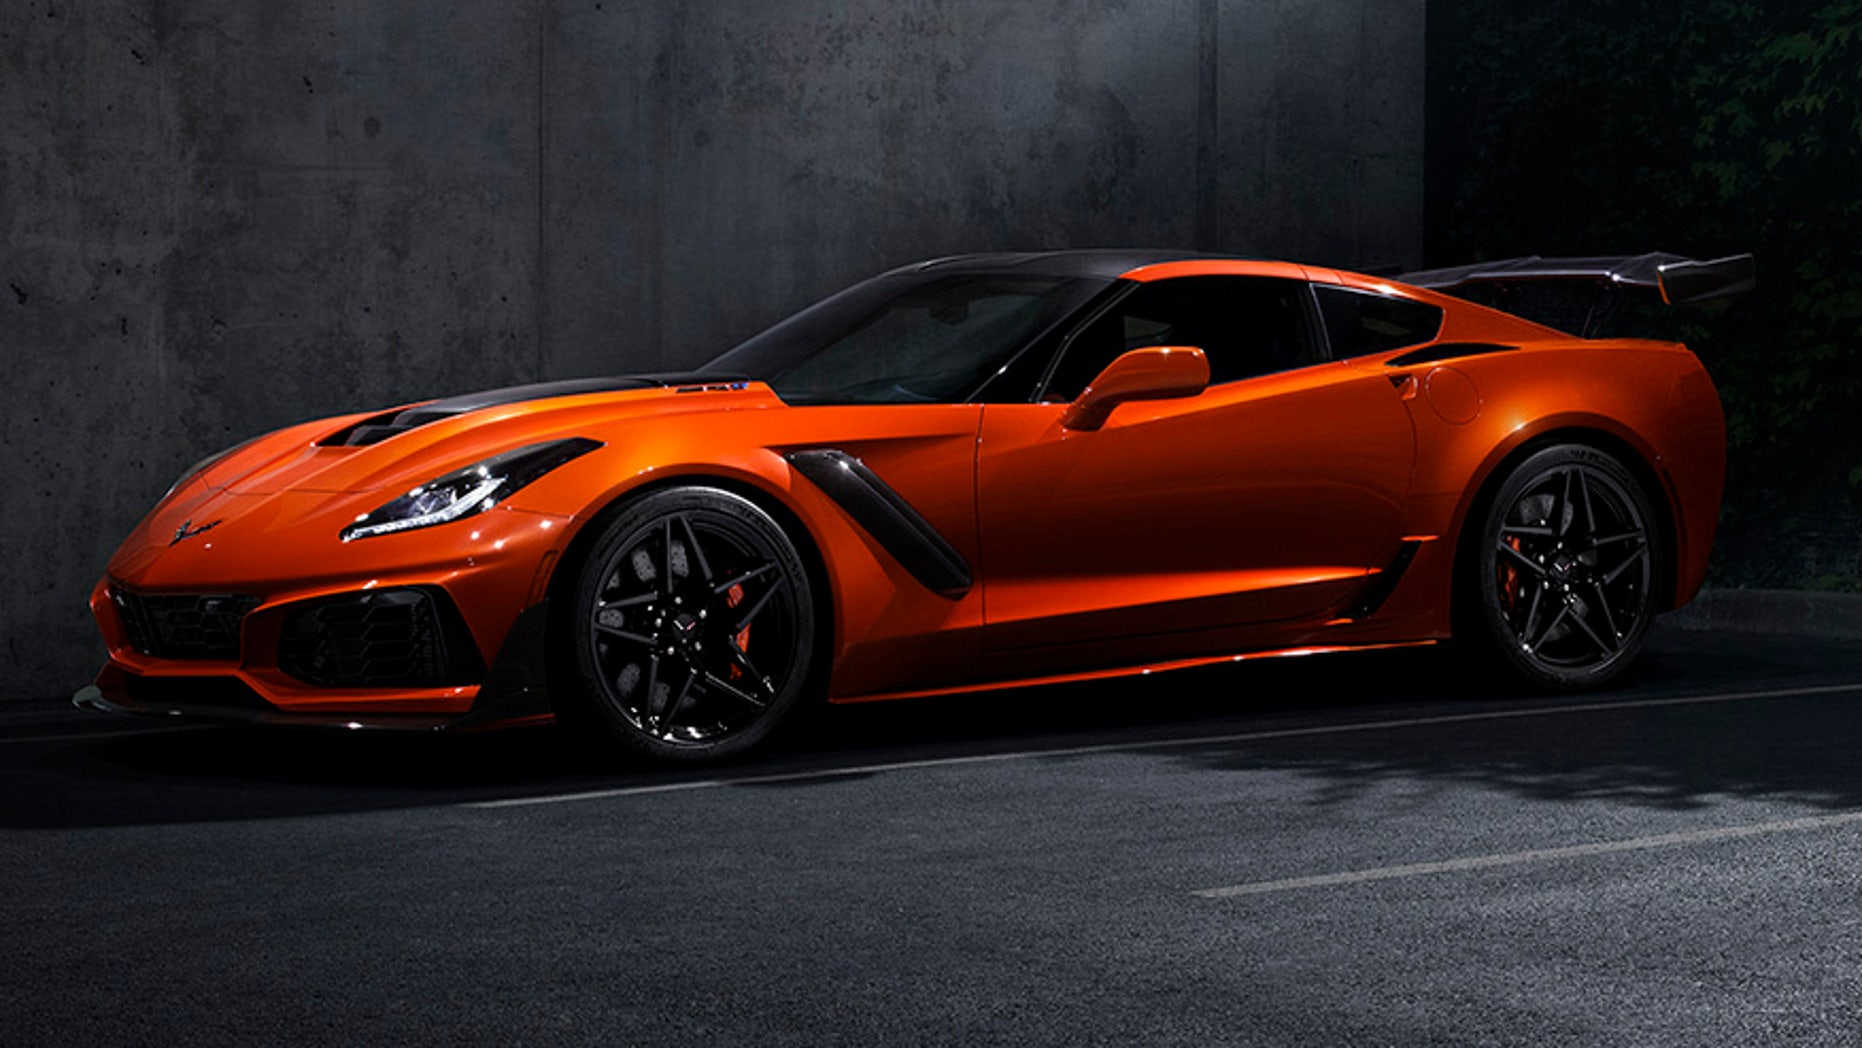 The fastest, most powerful production Corvette ever: the 755-horsepower 2019 ZR1.